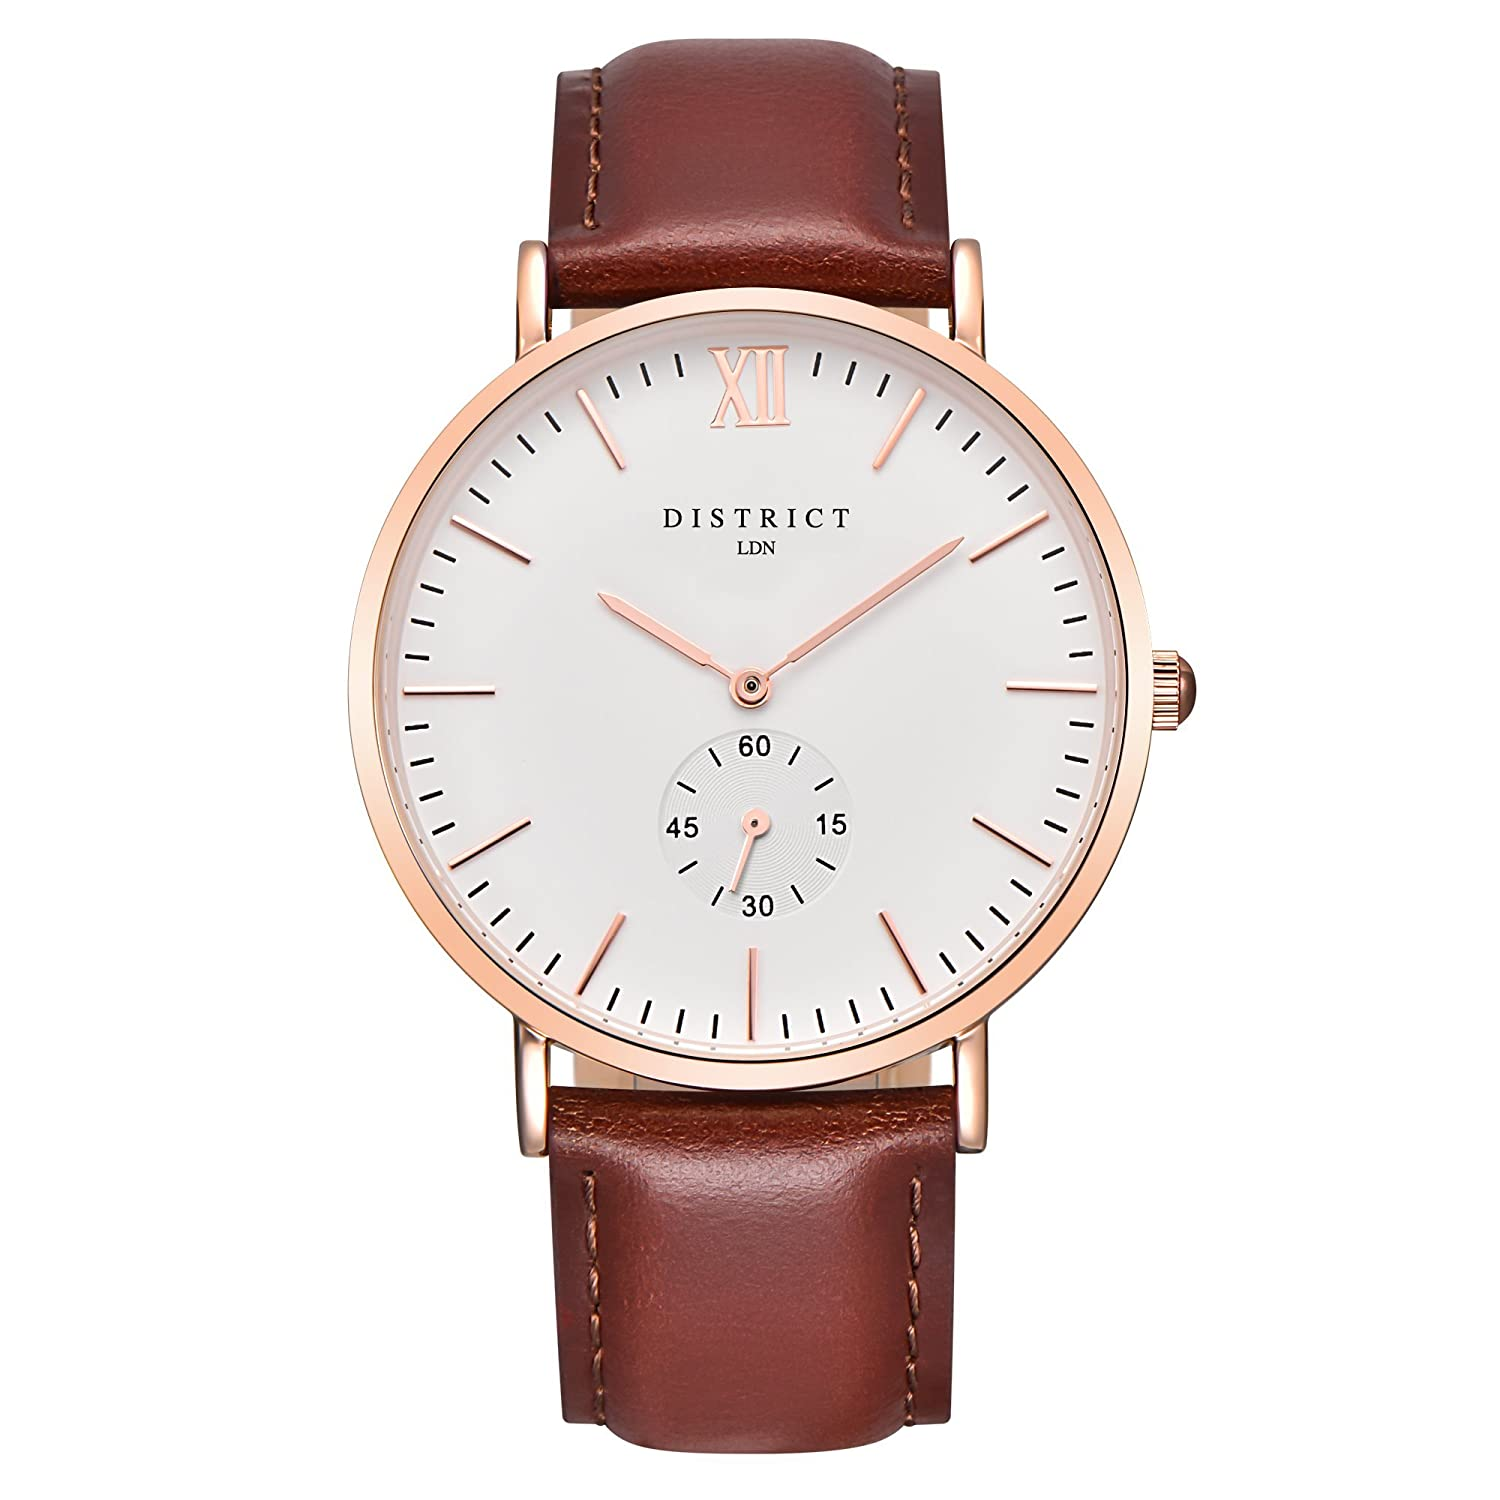 84c0dfe5c46 District London Oxford Edition Mens Watch - Slim Light Brown Leather Band  Quartz Rose Gold Wrist Watch Luxury Classic Simple Casual Design White Dial  Watch ...